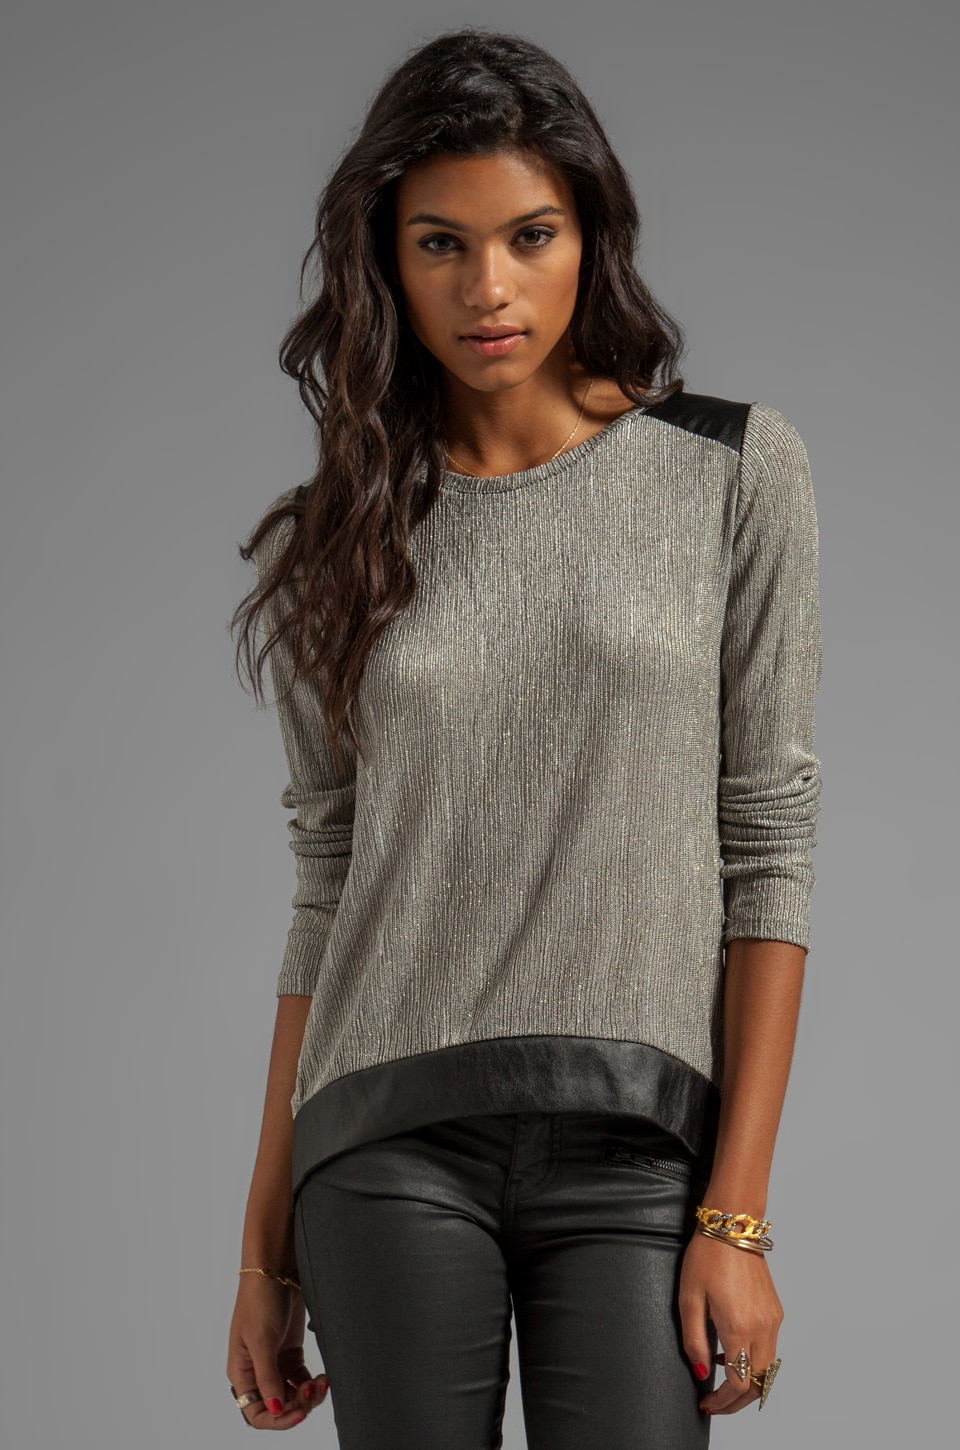 Generation Love Atticus Metal Leather Patch Long Sleeve Top in Gold